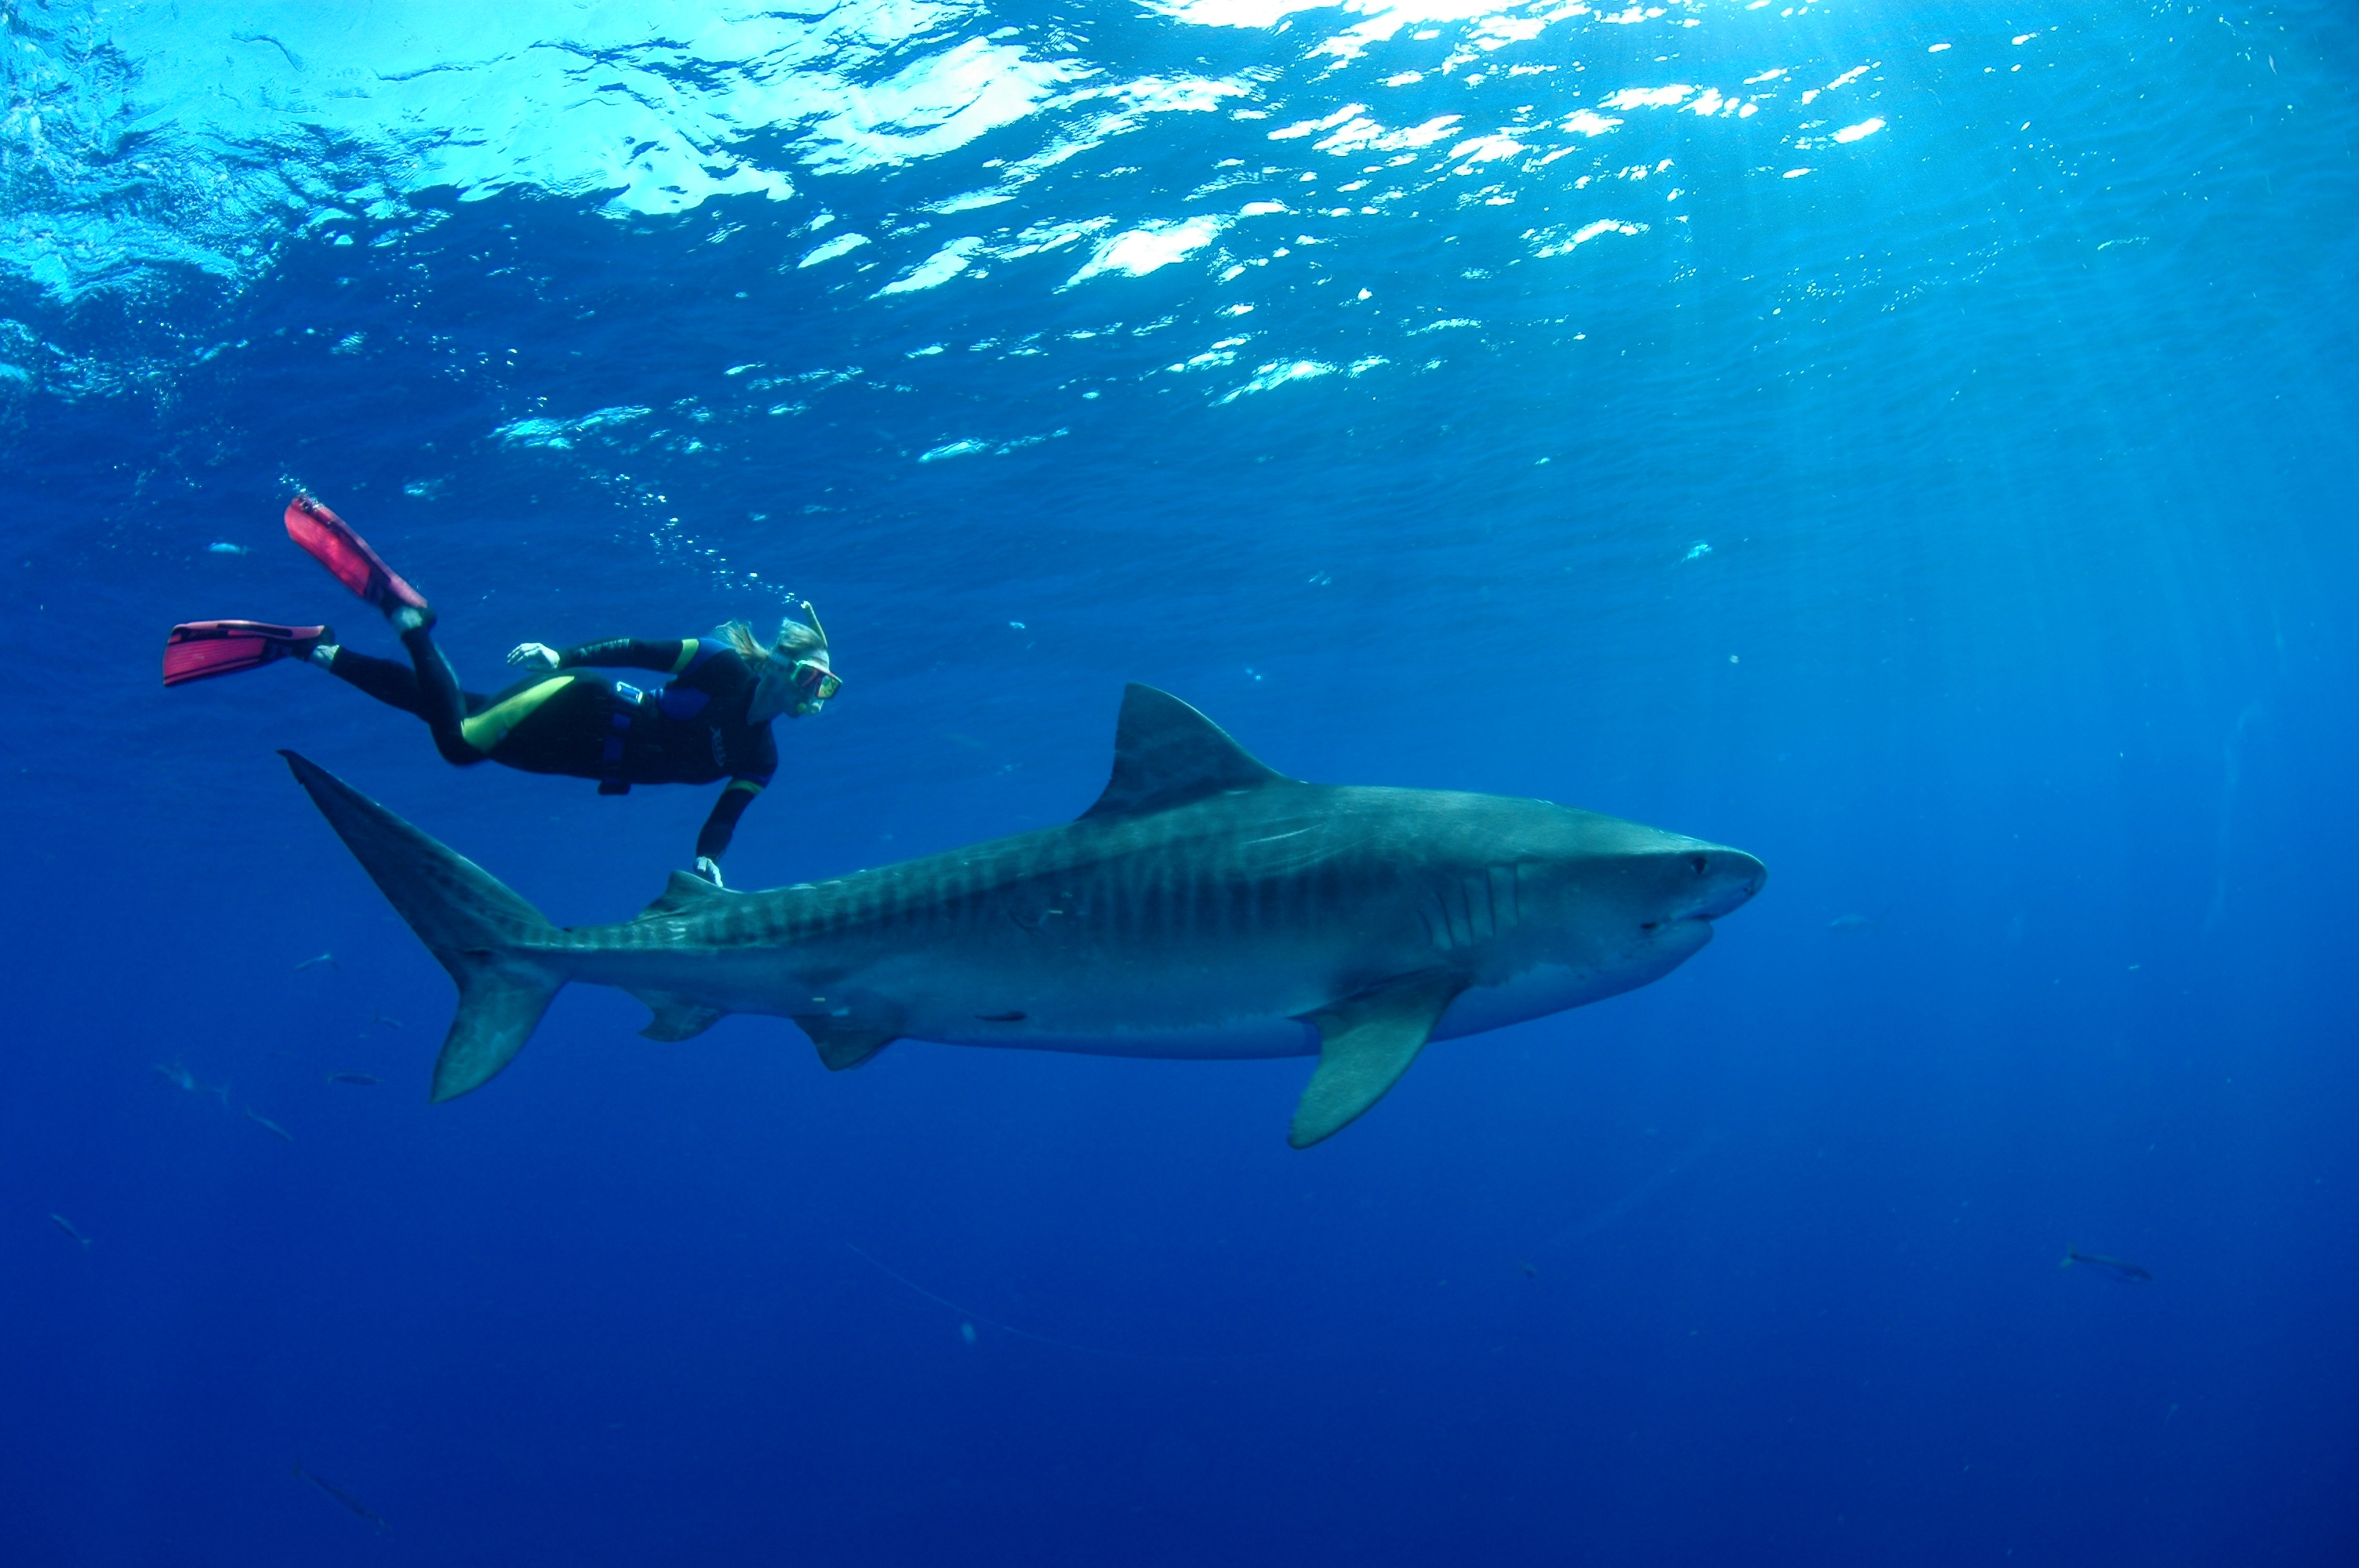 Woman swimming next to shark in water